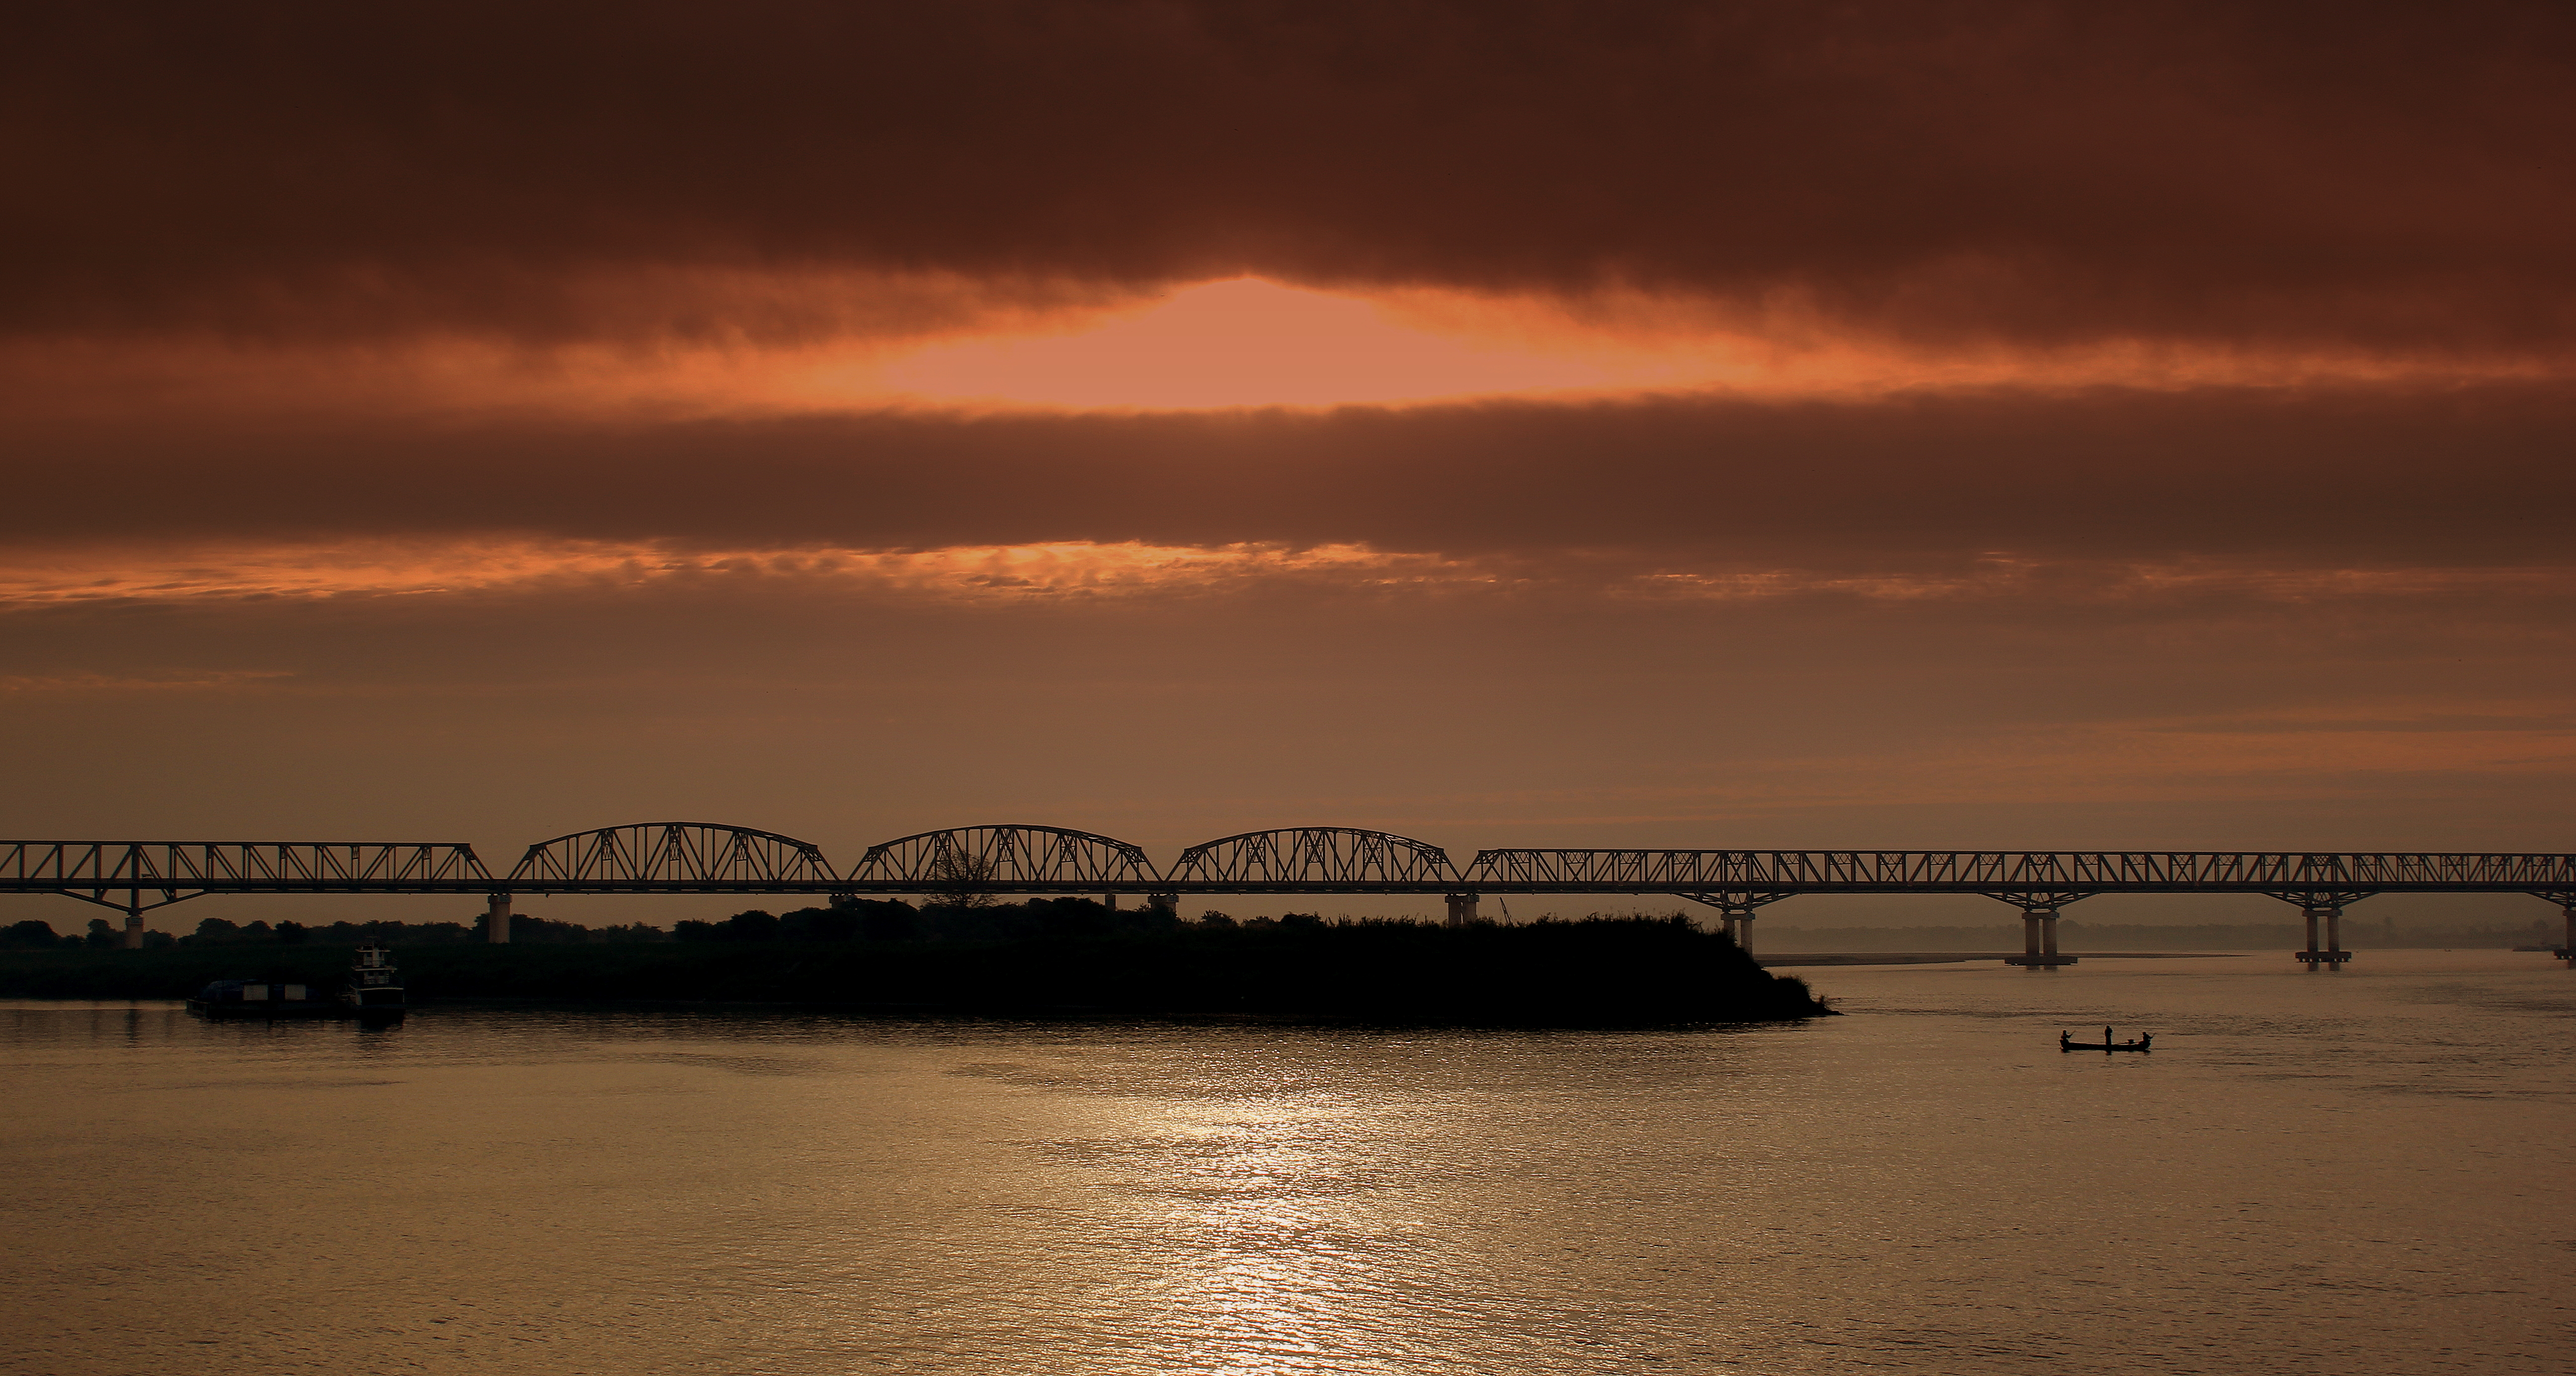 Pakokku Myanmar  city photo : PAKOKKU BRIDGE OVER THE IRRAWADDY RIVER, FERRY JOURNEY FROM BAGAN ...